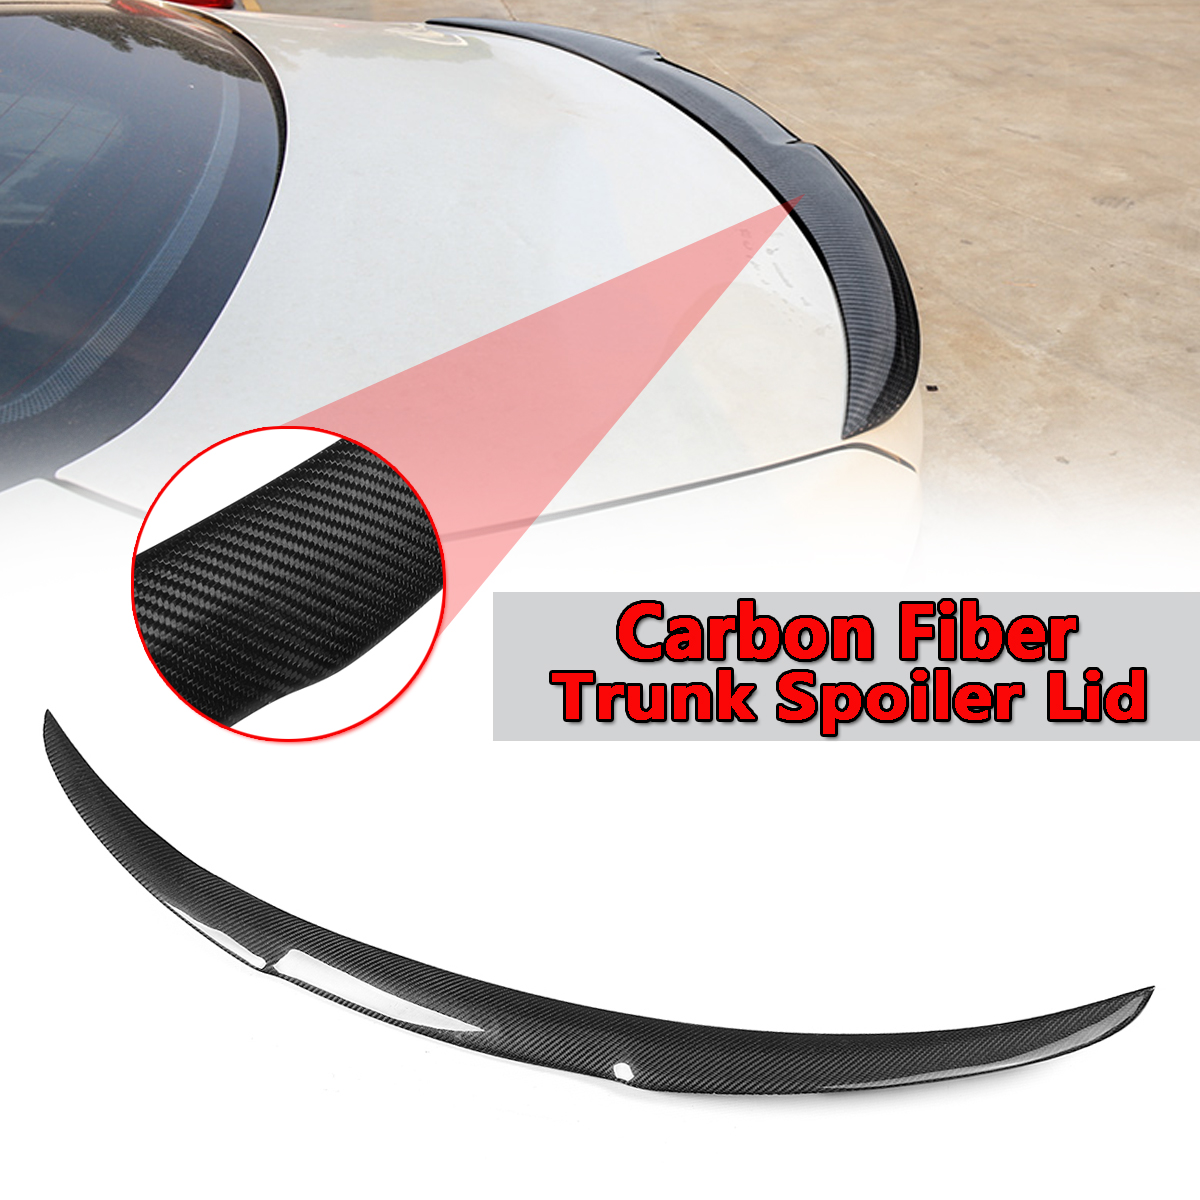 New Car Rear Carbon Fiber Rear Trunk Spoiler Wing For BMW 2011-2016 F10 F18 5 Series 528i 535i M5 Rear Trunk Roof Wing Spoiler f10 carbon fiber m4 style spoiler rear trunk lip wings for bmw 5 series f10 m5 2010 2017 520i 523i 525i 528i 535i